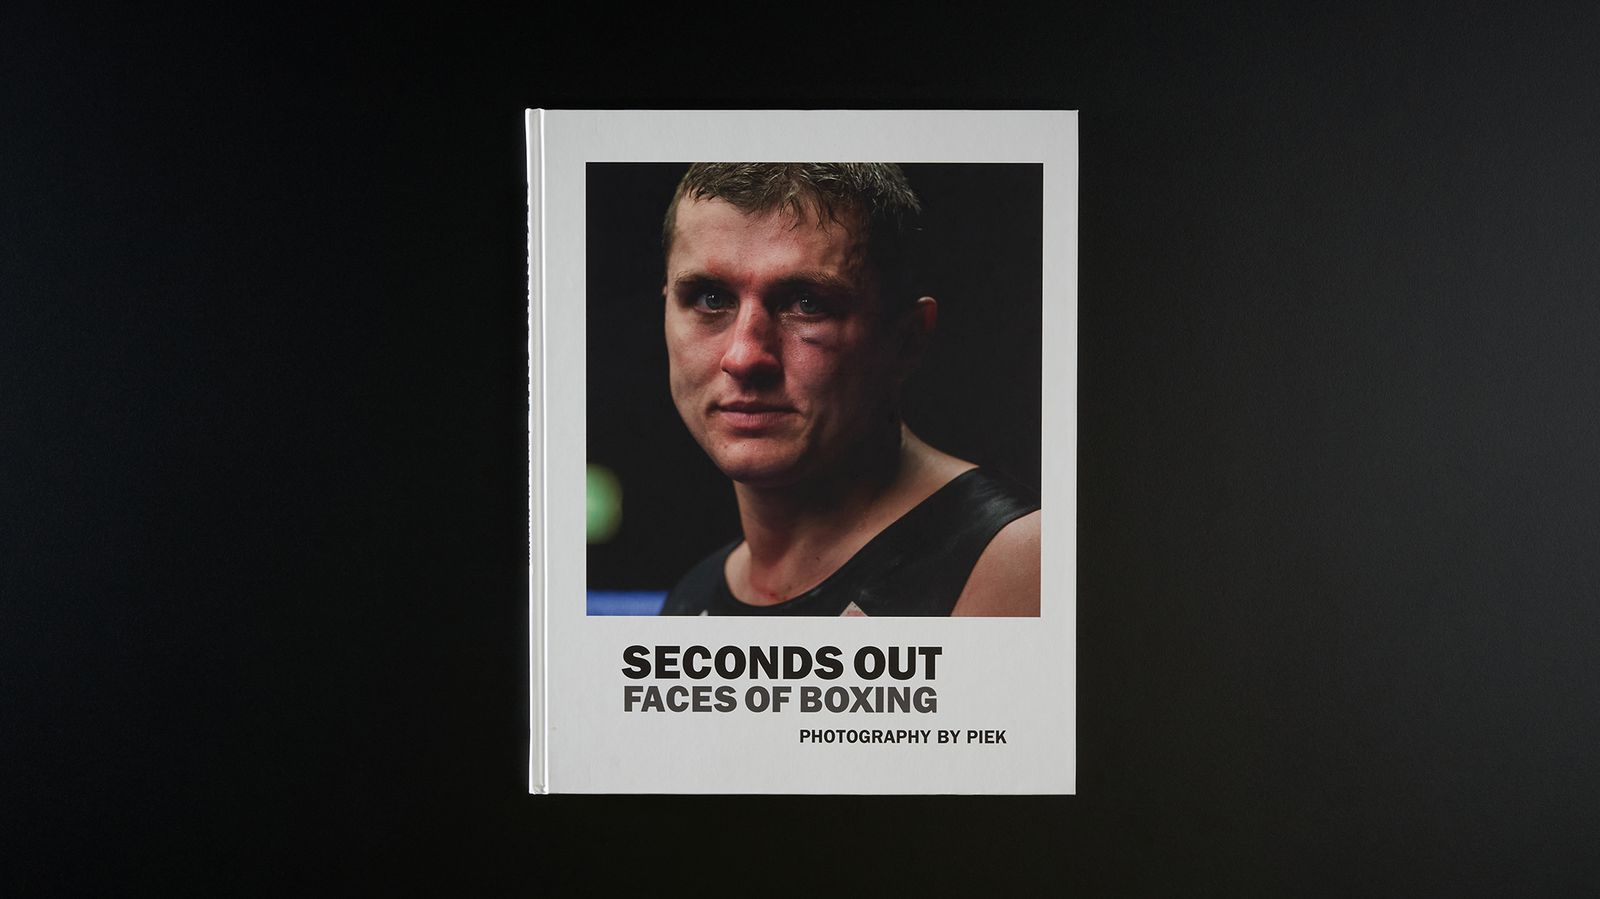 Seconds out, Faces of boxing - Cover.jpg